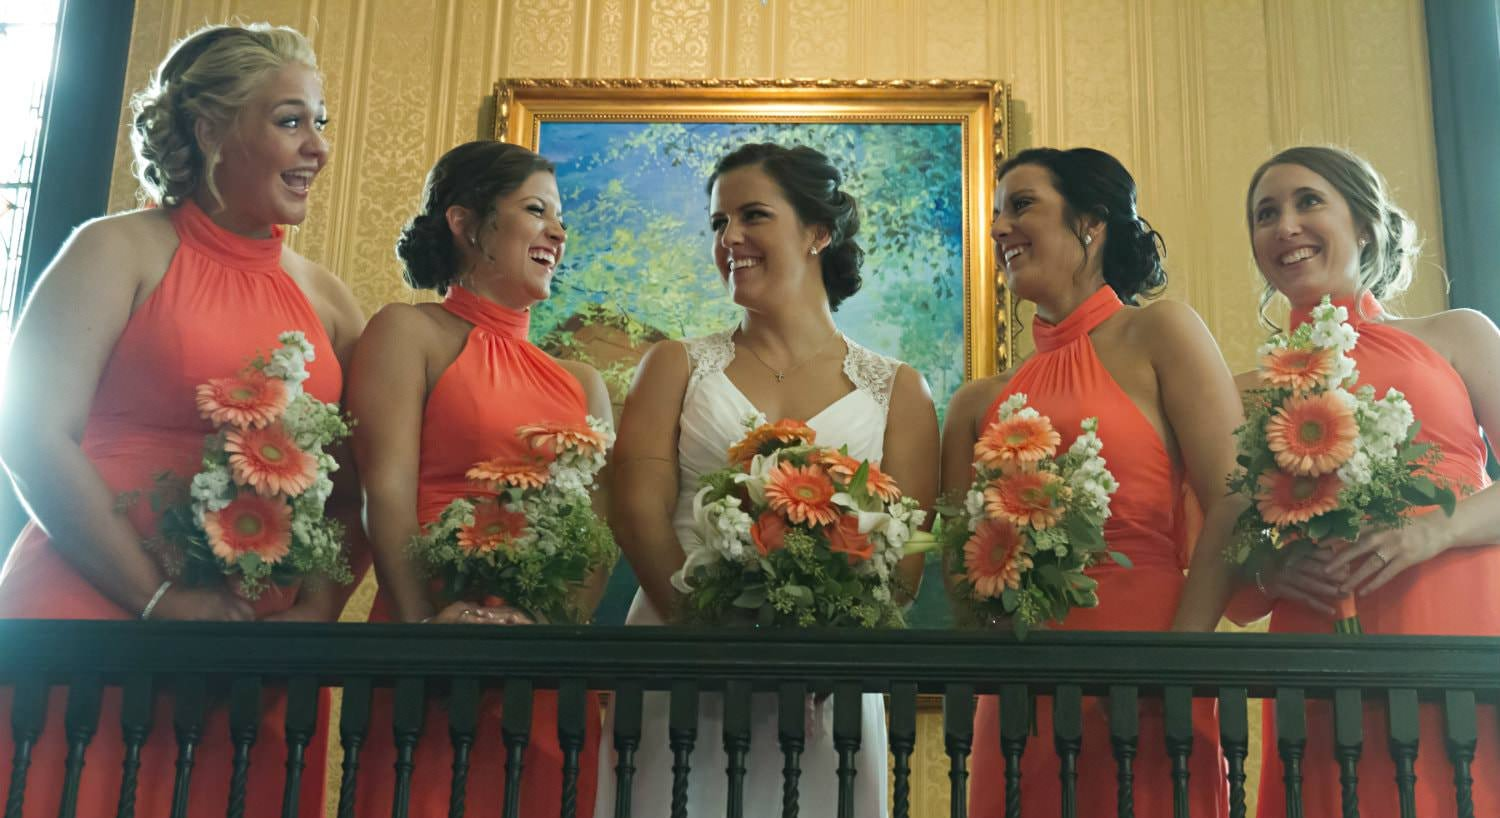 Bride in white dress flanked by two bridesmaids on each side in orange dresses all holding white and orange bouquets